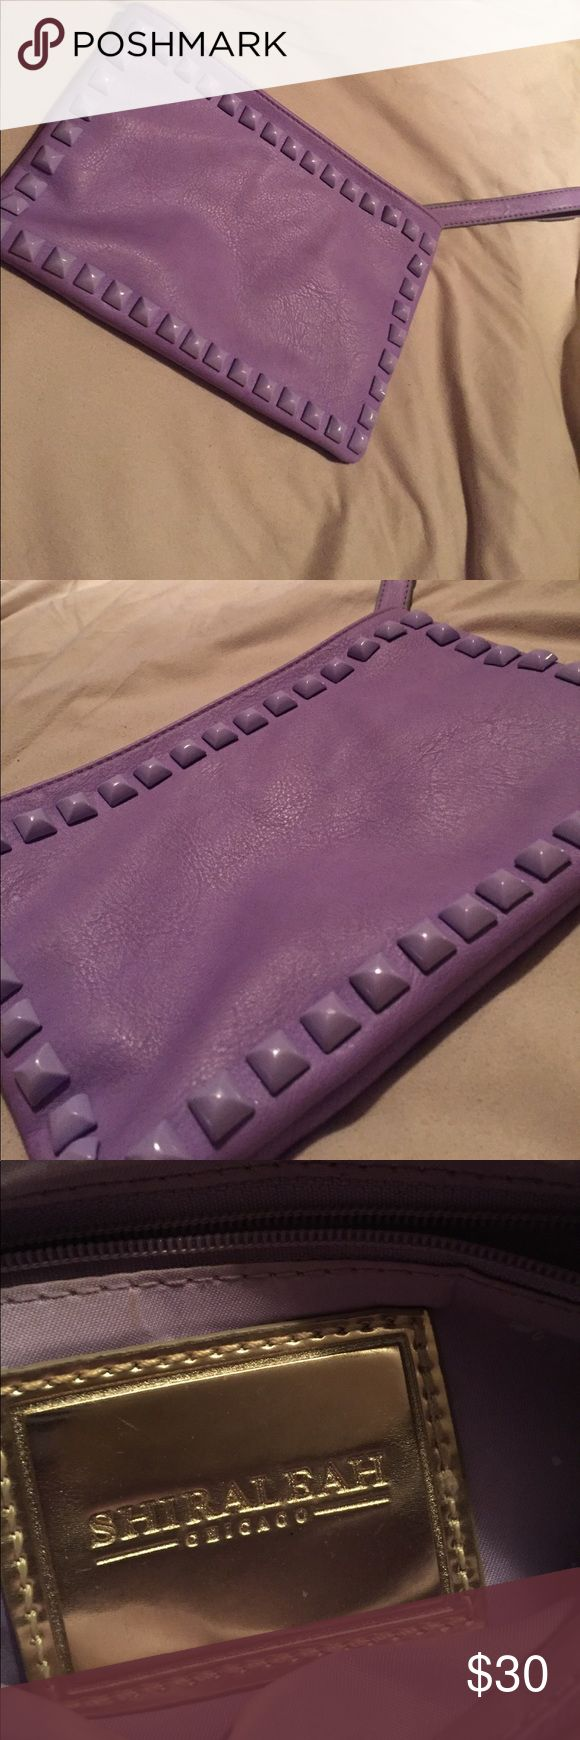 FLASH SALE! Shiraleah Vegan Leather Clutch 💜 Vegan leather purple studded clutch! Used once, excellent condition! Zipped inside pocket and two small inside pockets! Perfect for a night out 💟. FLASH SALE; 1 hour 🔥🔥🔥🔥 shiraleah chicago Bags Clutches & Wristlets